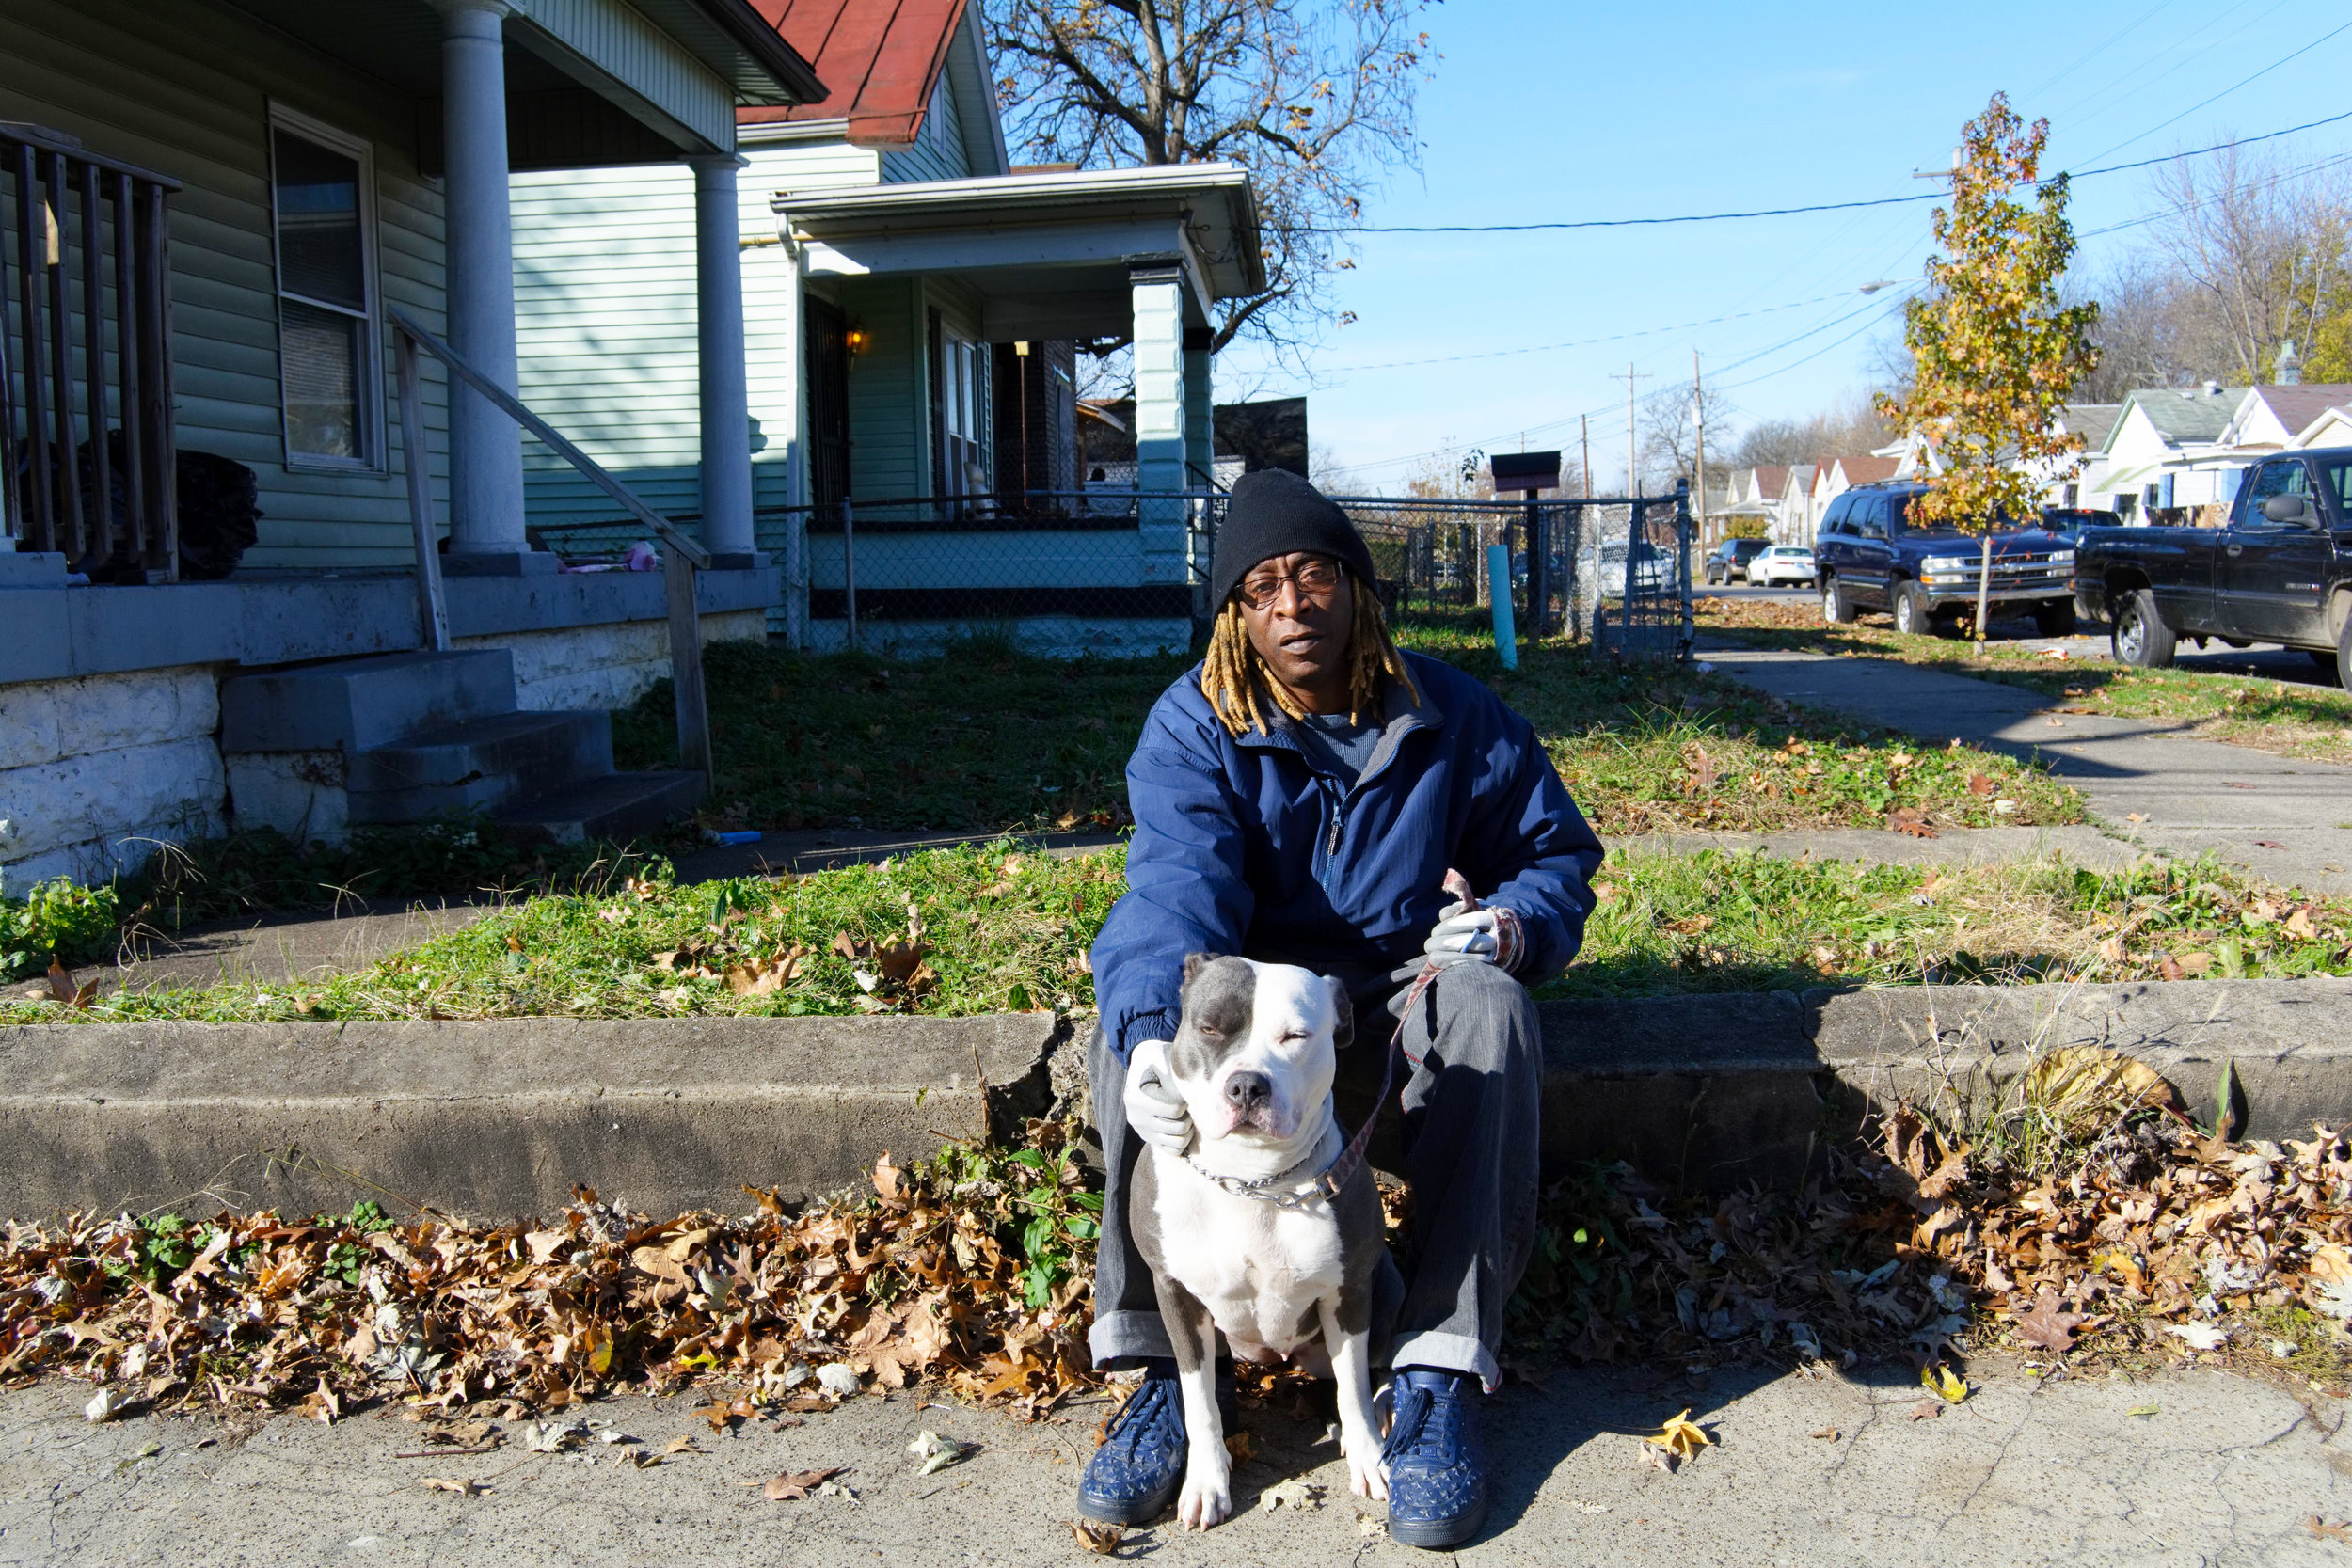 """""""I'ma keep it real with you. I just got back into God. I got three girls. Out of my three girls, my oldest one is still living. When I was living in Baltimore, one of my girls was 7 years old and got shot in the head. I came back to Louisville and my 16-year-old got shot in the head. My 40-year-old came back from Alaska and now she lives in Houston. I got four grandkids. I turned 60 on Friday and for a long time, I had doubts about God. You know, I lost my two girls, my father died in my arms and came back to Louisville and my grandmother died. I finally got to meet my mother, whom I didn't know for 25 years. I couldn't say that I loved her or liked her, and she died. I also had a sister that jumped off the bridge, so I had a lot of tragedy. I'ma keep it real with you. I was diagnosed with depression and suicidal, I get SSI. I had three suicide attempts, but for some reason, he's holding me here. I'm just keeping it real with you, it's my life story.  Now, 12 years clean and sober, I don't do anything but walk this girl (points to the dog), that ain't mine. I stay with my sister, who is 20 years clean and sober. On April 7th, next year, I'll be 13 years clean and sober. I had a messed up life. Now, I'm getting God back into my life. I still have questions and doubts, but that's understandable, with everything that I've been through. For me, staying with my sister and my aunt helps me. I ain't been going to church every Sunday, but I go. As far as knowing the Bible, I don't know it but I'm getting to it. I'm dyslexic, but I'm teaching myself to get through it.  My oldest daughter came back to life and that motivates me. I abandoned her, in the past. When I graduated from Drug Court, she was the only one that was there for me. She came all the way from Alaska for my graduation. As long as I talk to her once a week, I'm good. I don't associate with too many people. I walk her. She's a good therapy dog. She's not mean to anybody. This is my buddy.  Be patient, things wi"""